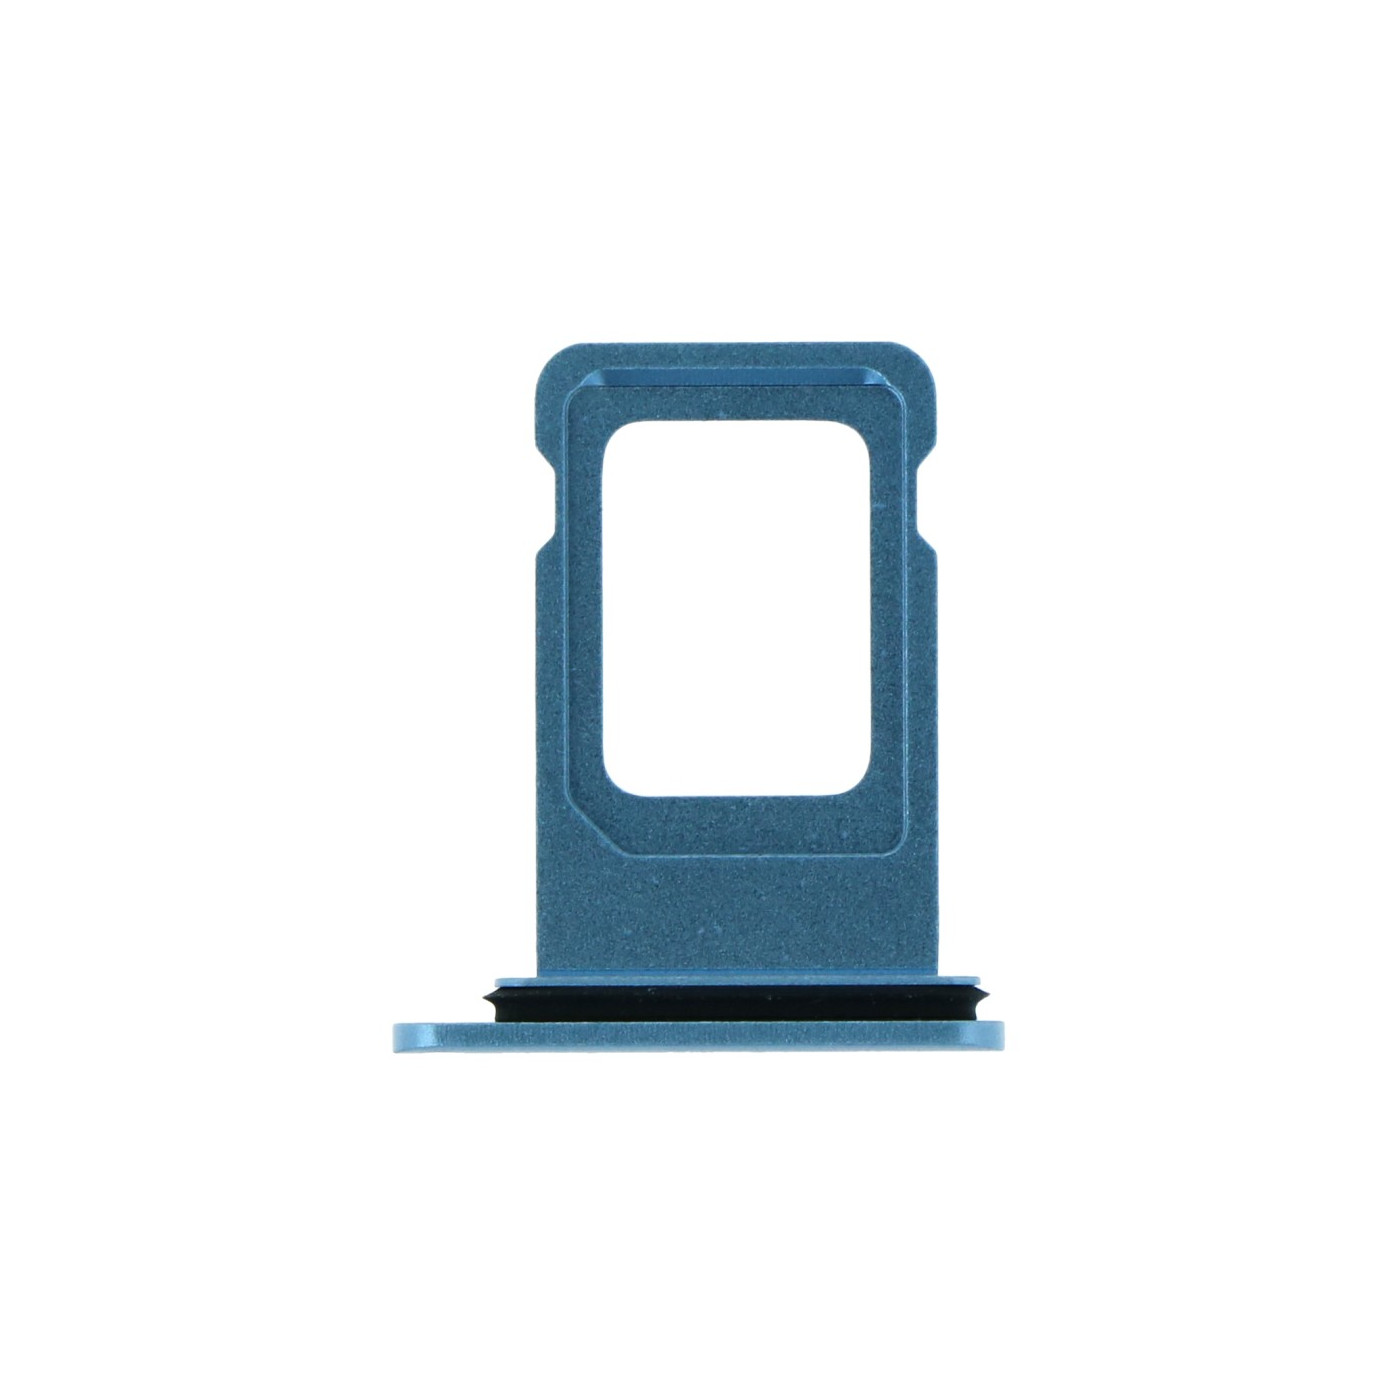 PORT iPhone SIM CARD SLOT SLIDE CART XR BLU TRAY REPLACEMENT